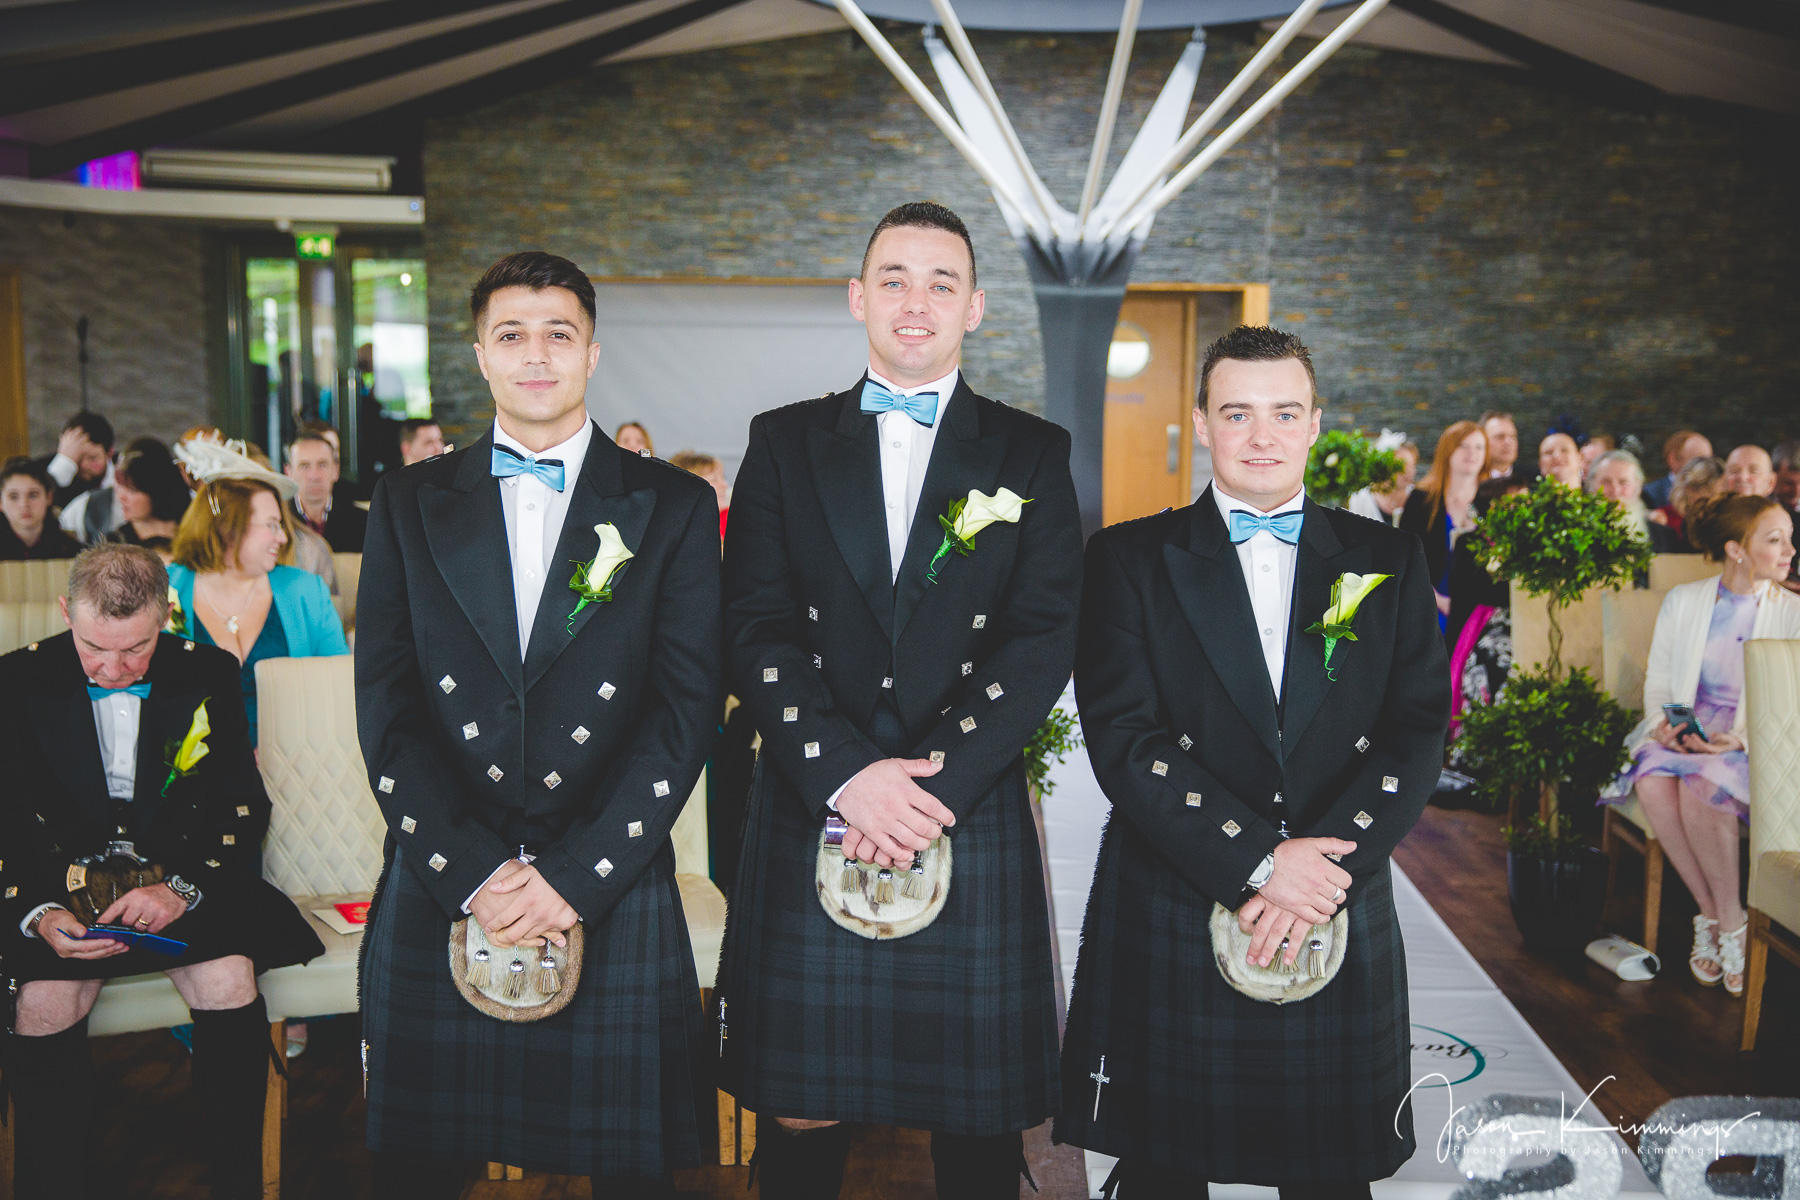 vu-wedding-photography-bathgate-8.jpg